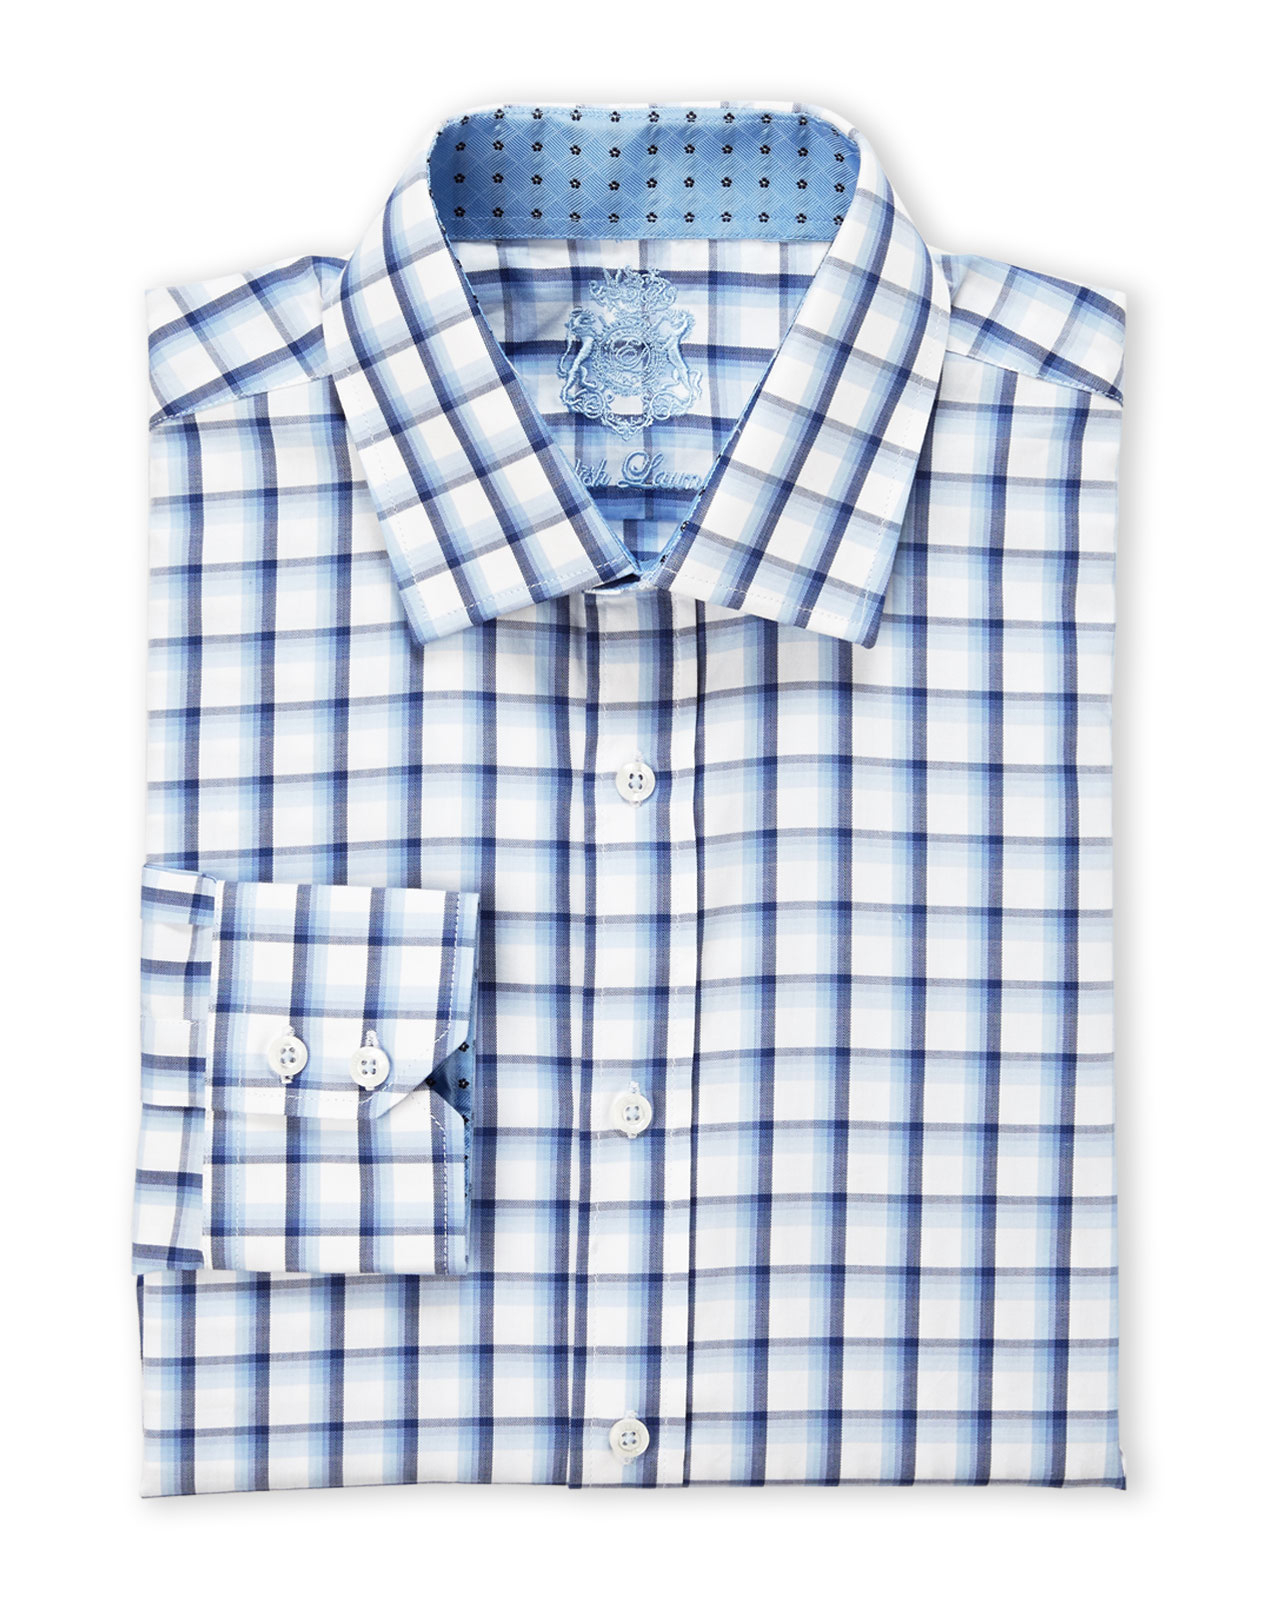 Lyst english laundry navy white check dress shirt in for Navy blue checkered dress shirt